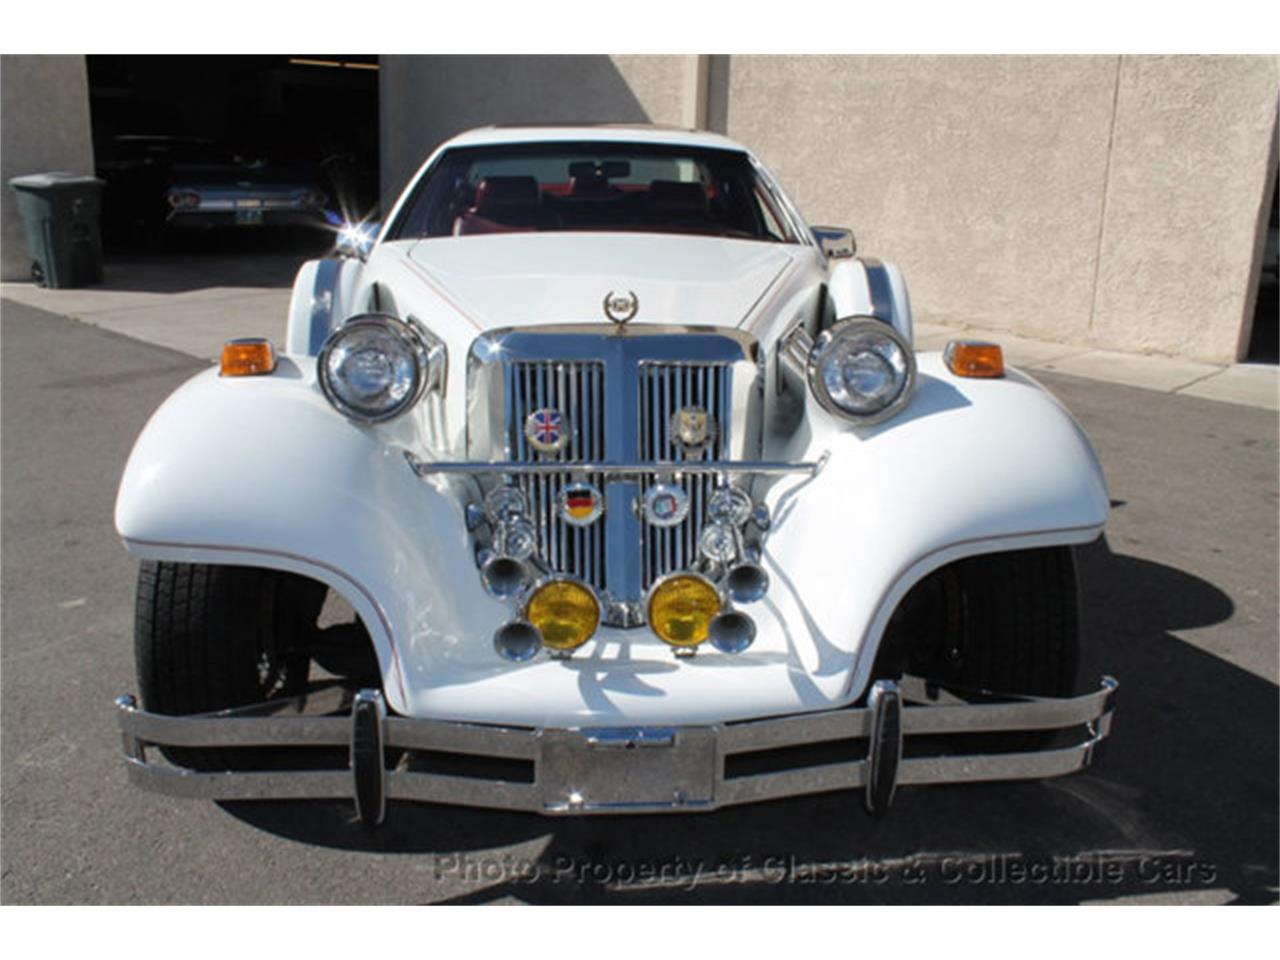 1988 Tiffany Classic for sale in Las Vegas, NV – photo 2